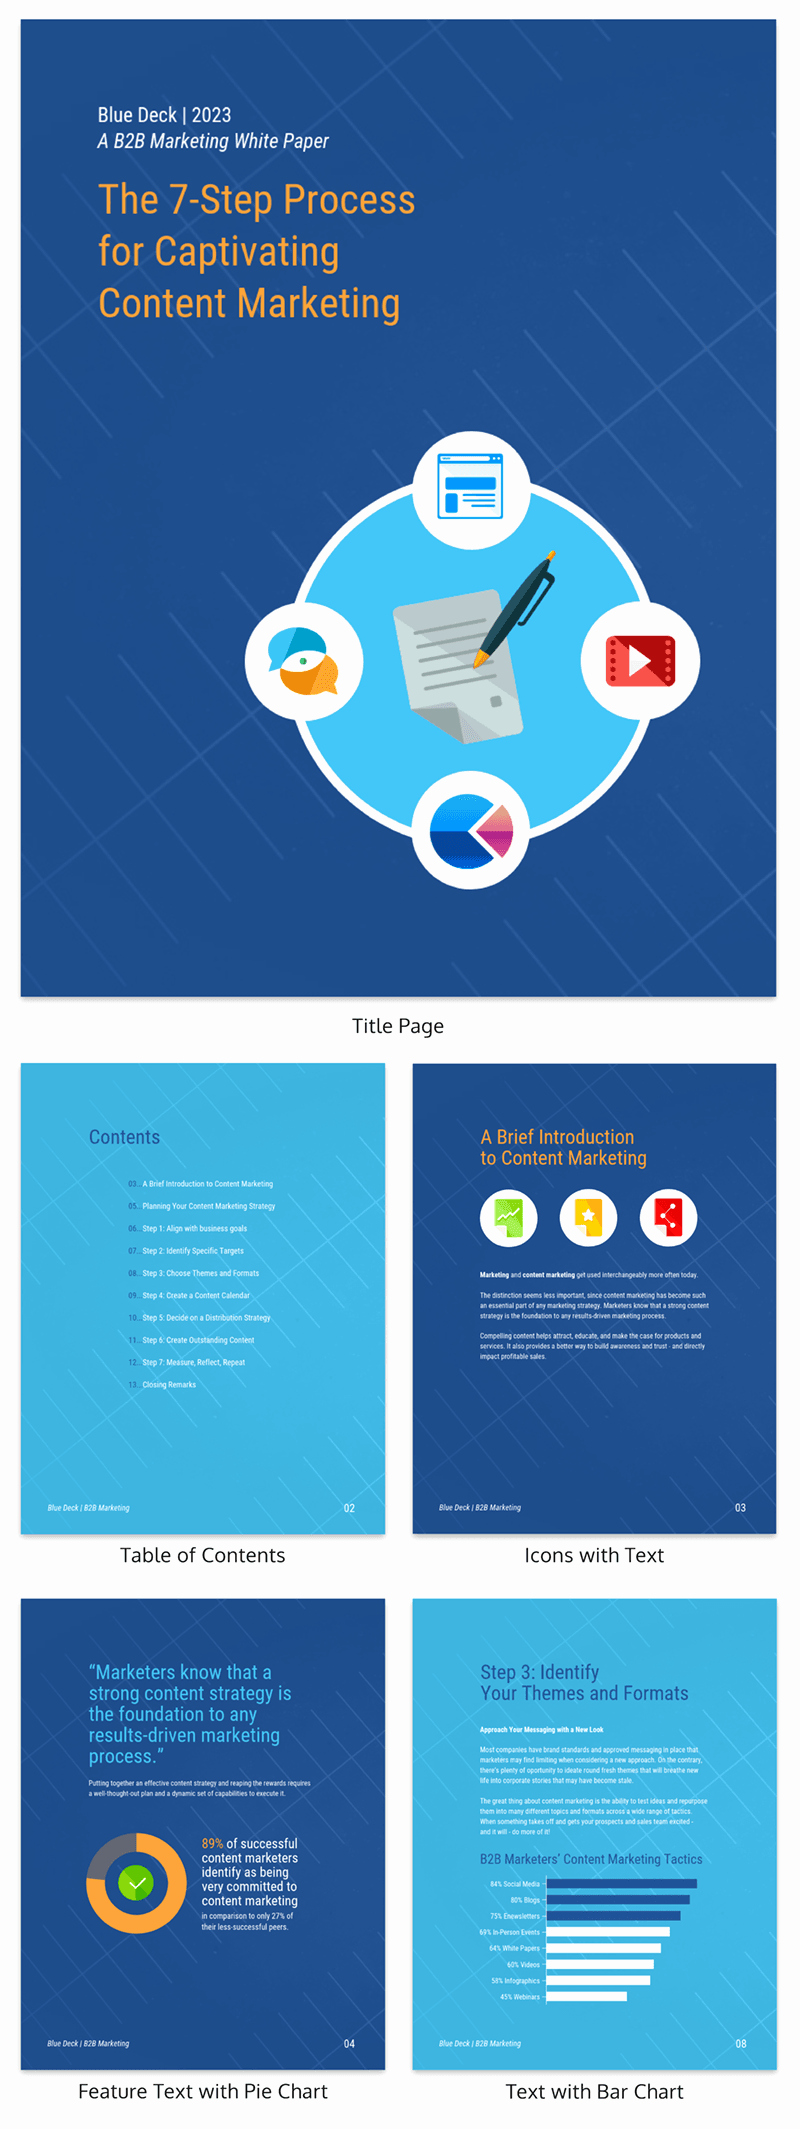 White Paper Design Template Luxury 20 Page Turning White Paper Examples [design Guide White Paper Templates] Venngage